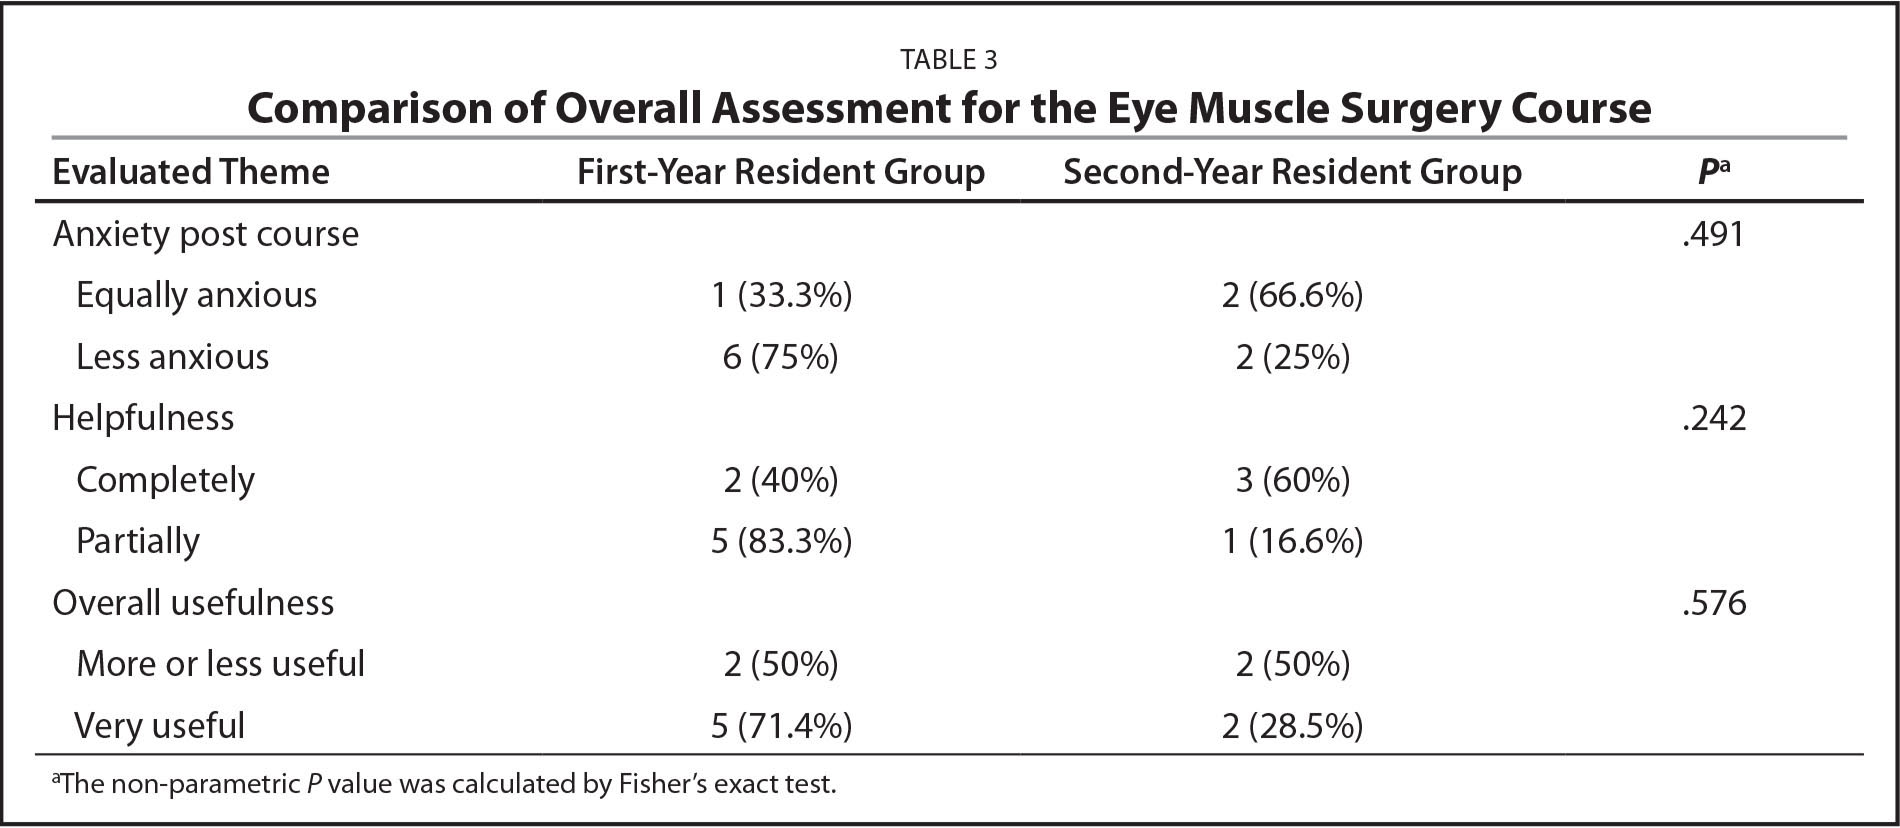 Comparison of Overall Assessment for the Eye Muscle Surgery Course